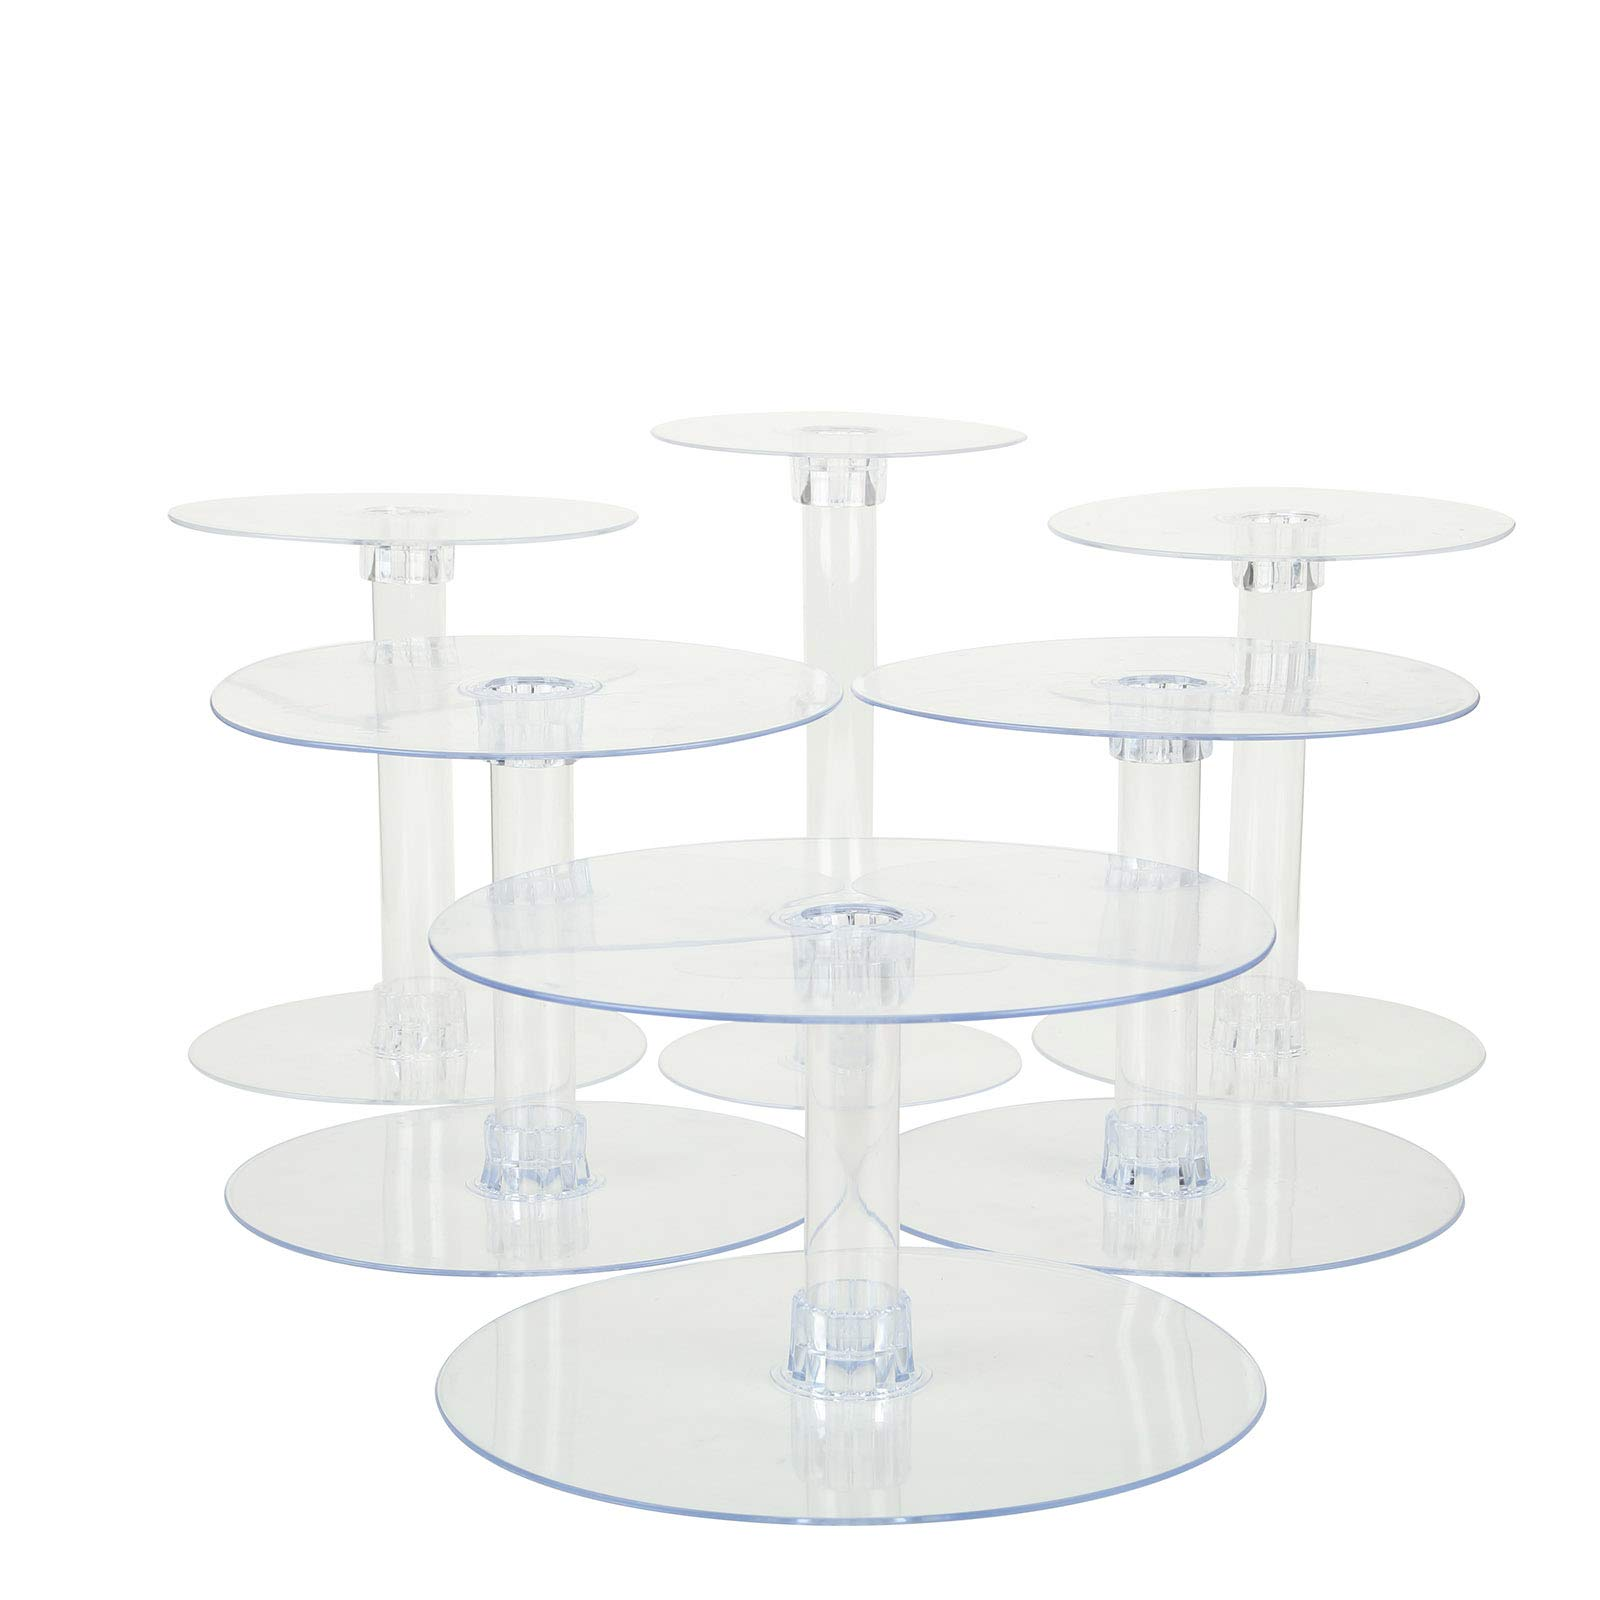 BalsaCircle 6 Tiers Clear Round Crystal Acrylic Cupcake Stand - Tiered Dessert Food Display Serving Tower Birthday Party Wedding